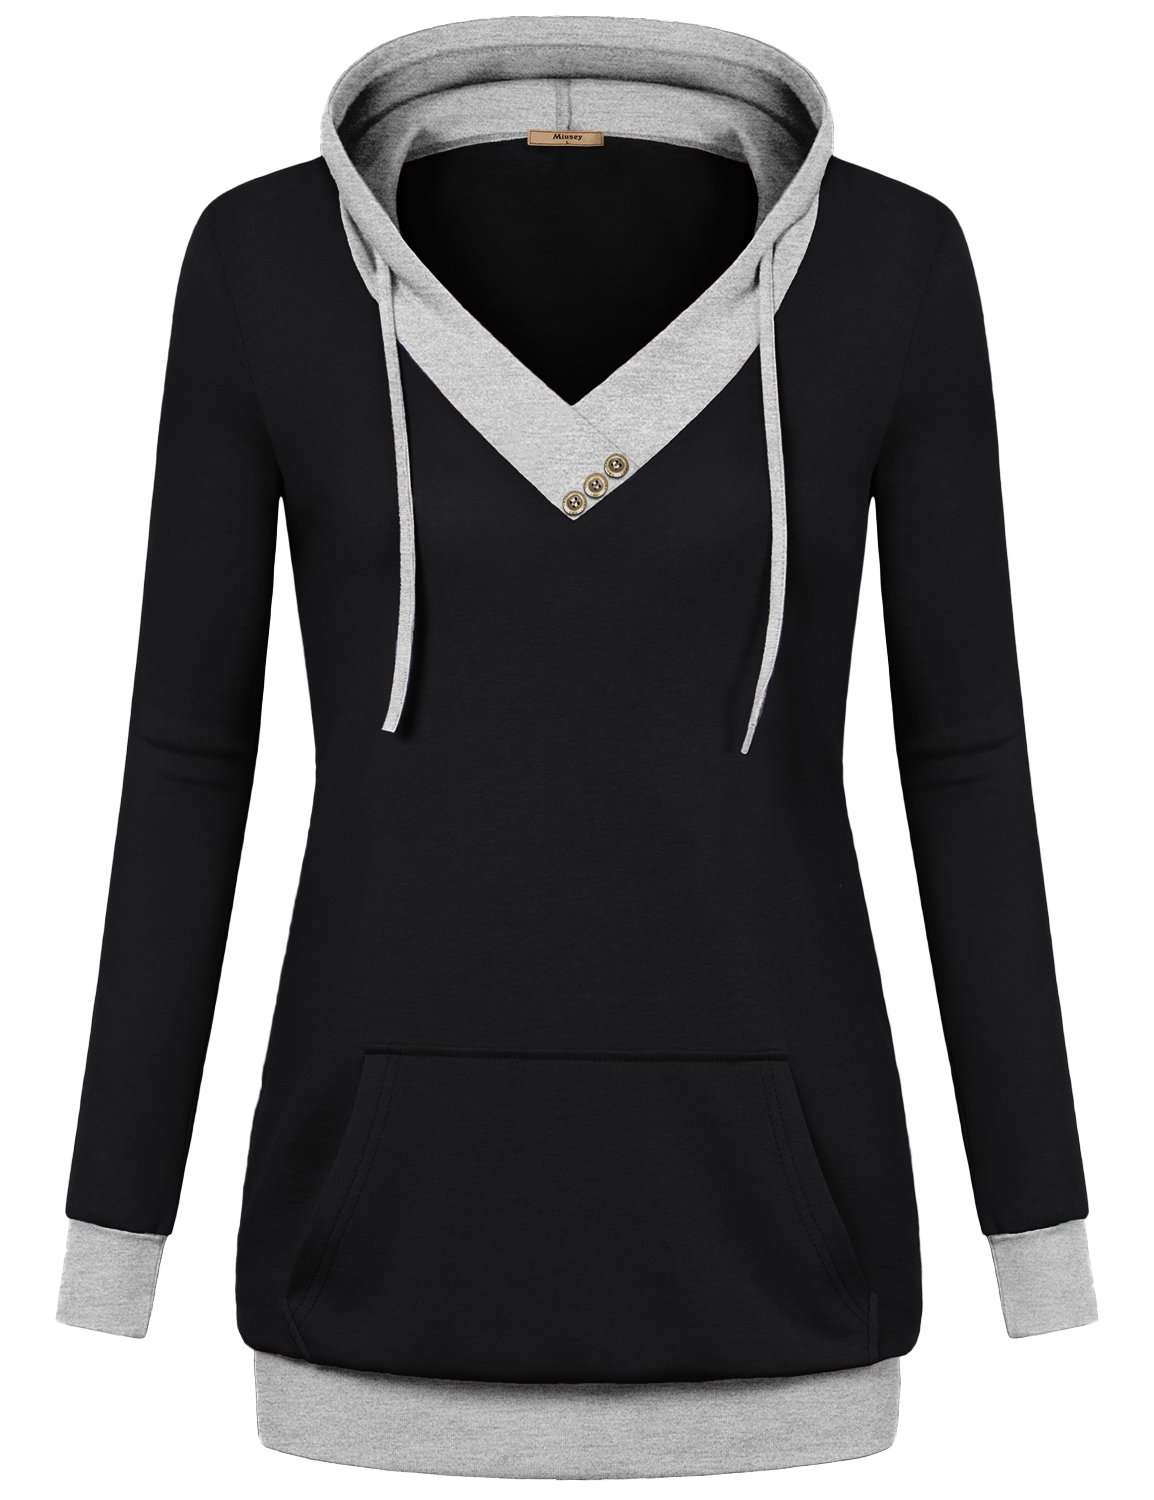 Miusey Business Casual Clothes for Women, Plus Size Fall V-Neck Long Sleeve Pullover Sweatshirt Hoodies with Kangaroo Pocket Black Medium